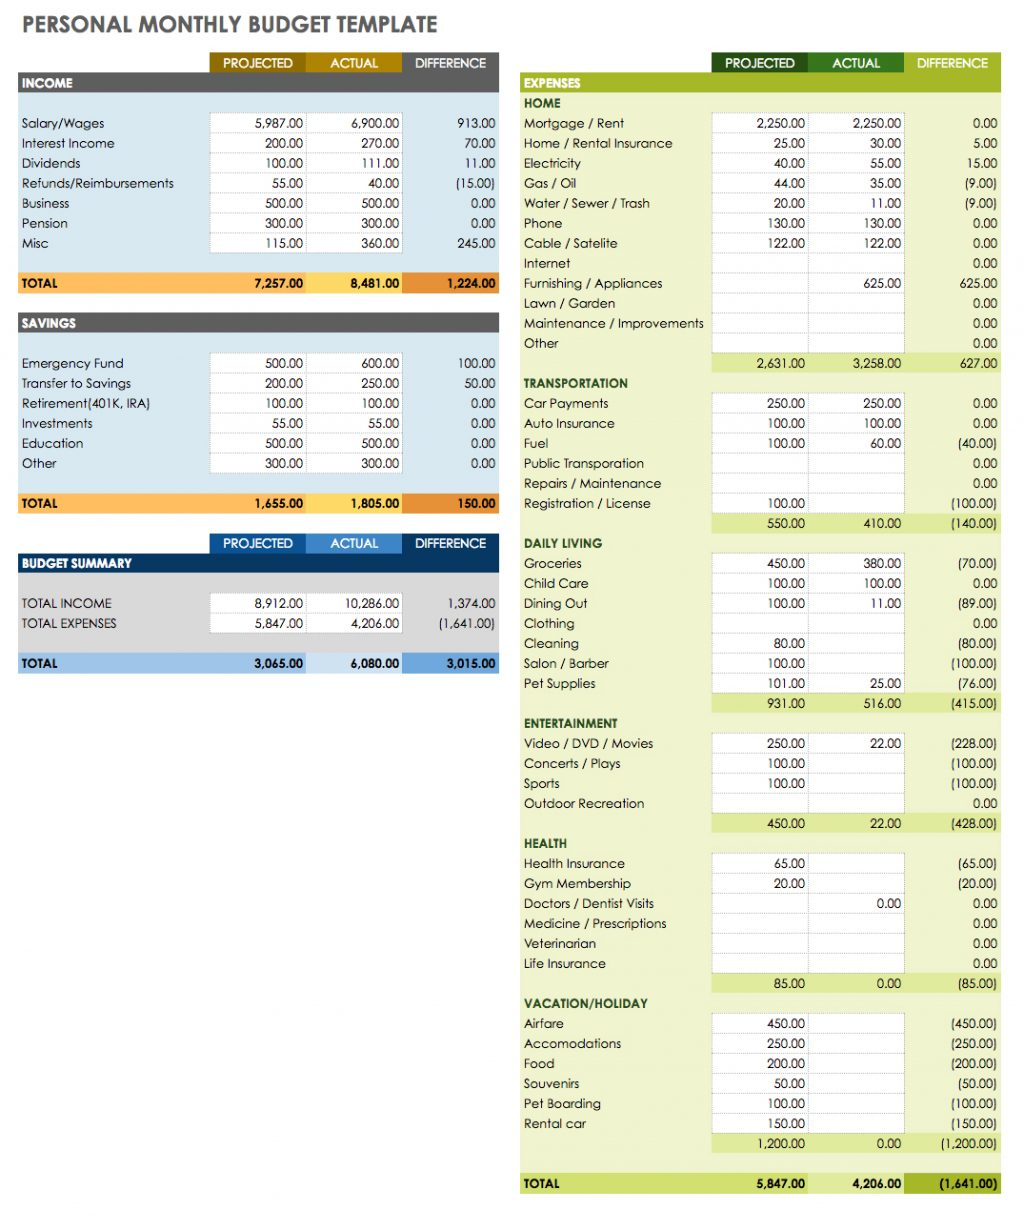 Car Cost Comparison Spreadsheet Pertaining To Sheet Company Car Comparison Spreadsheet Vehicle Cost Used Excel